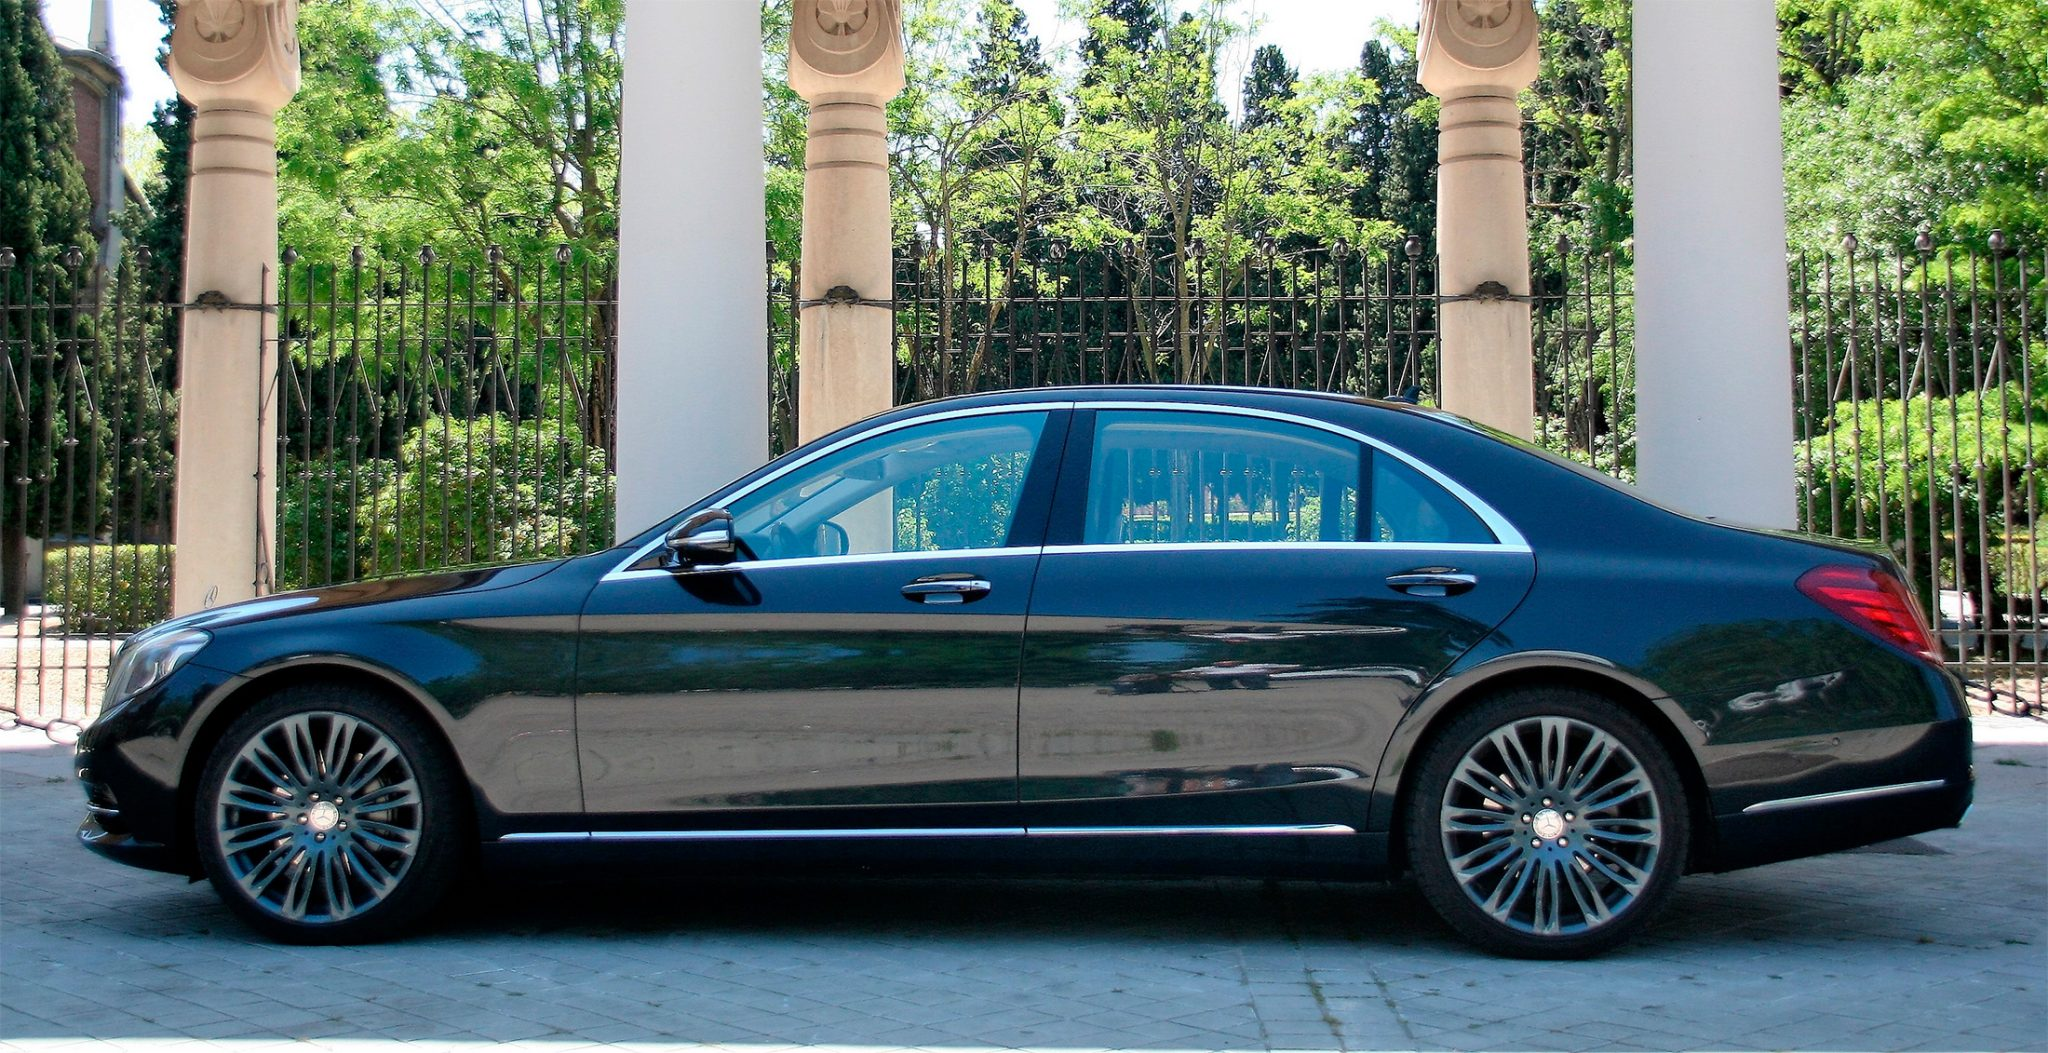 mercedes-benz-clase-s-maybach-chofer-madrid